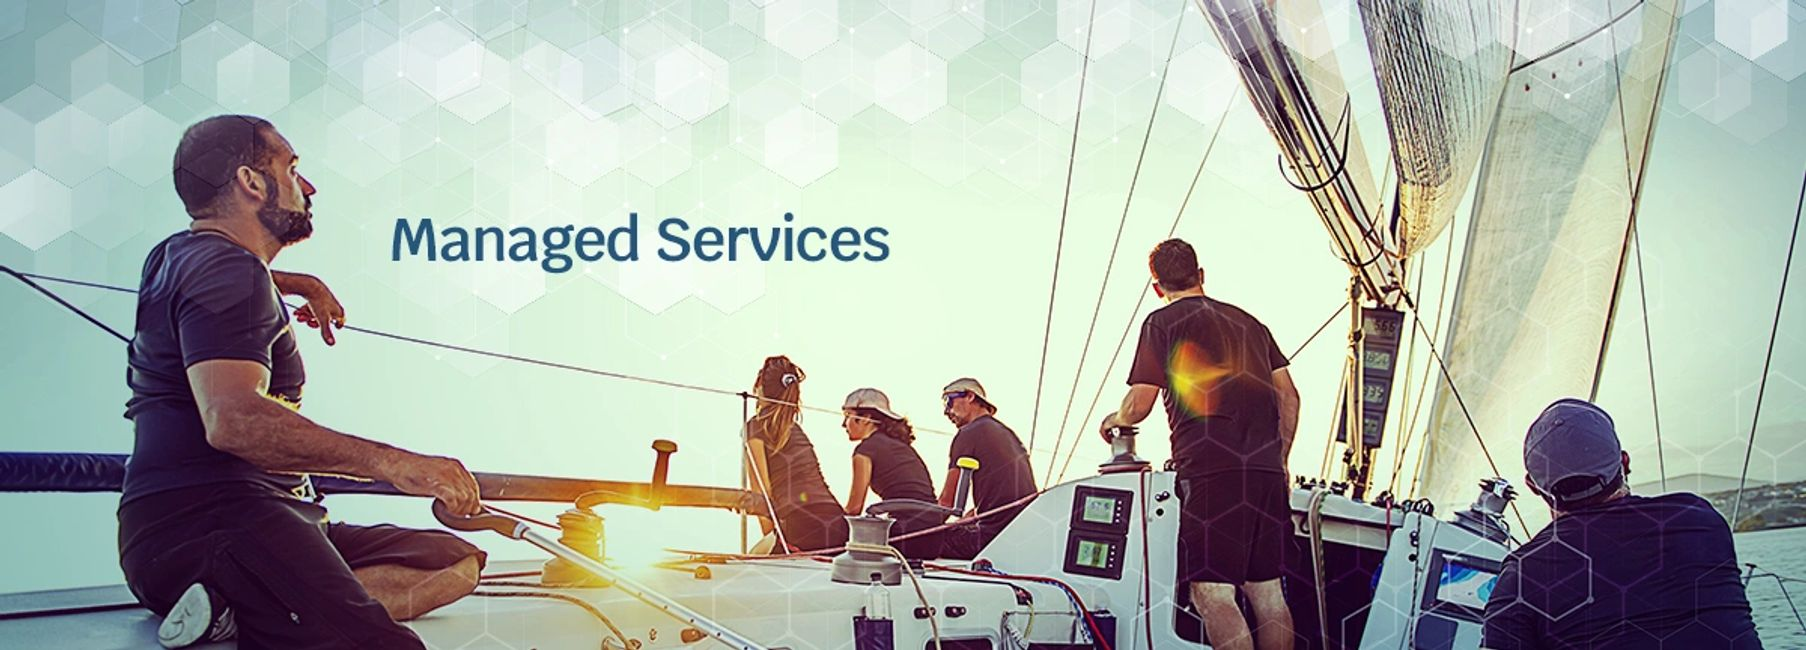 Secure IT Managed Services, Ballast Services